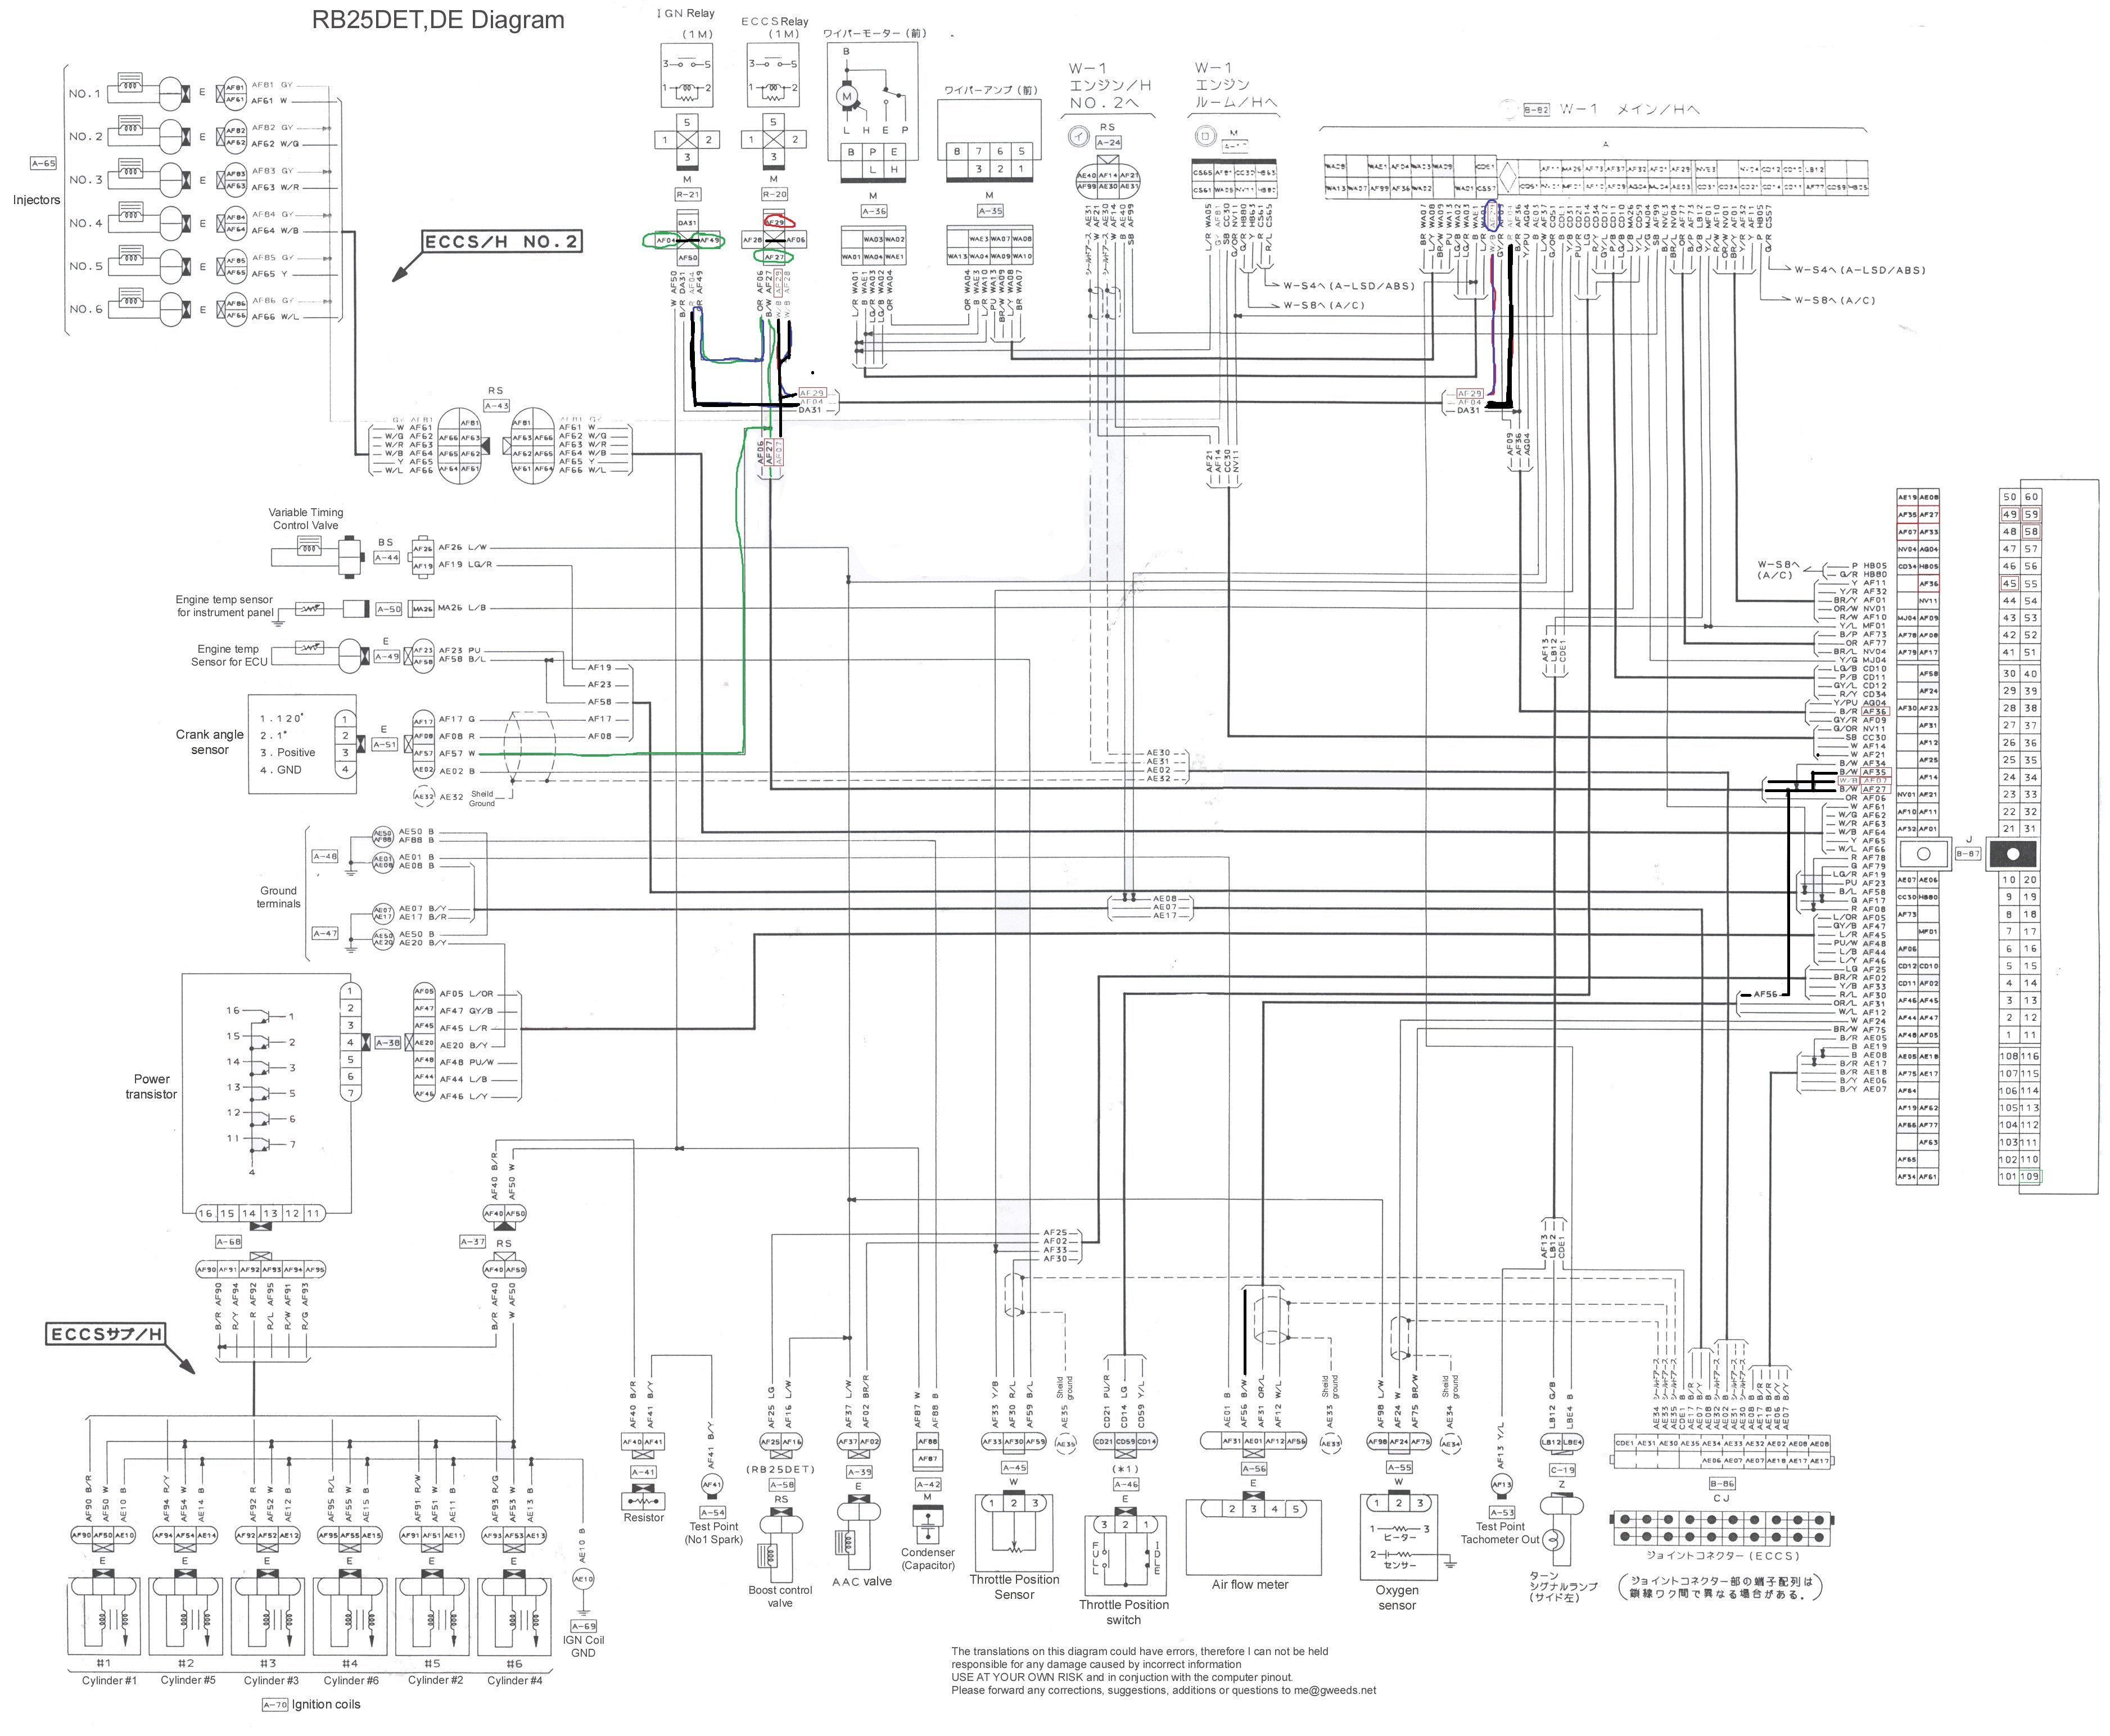 Rb20det Wiring Diagram | Wiring Diagrams on battery harness, amp bypass harness, safety harness, engine harness, cable harness, fall protection harness, pet harness, radio harness, obd0 to obd1 conversion harness, dog harness, alpine stereo harness, pony harness, suspension harness, electrical harness, maxi-seal harness, oxygen sensor extension harness, nakamichi harness,